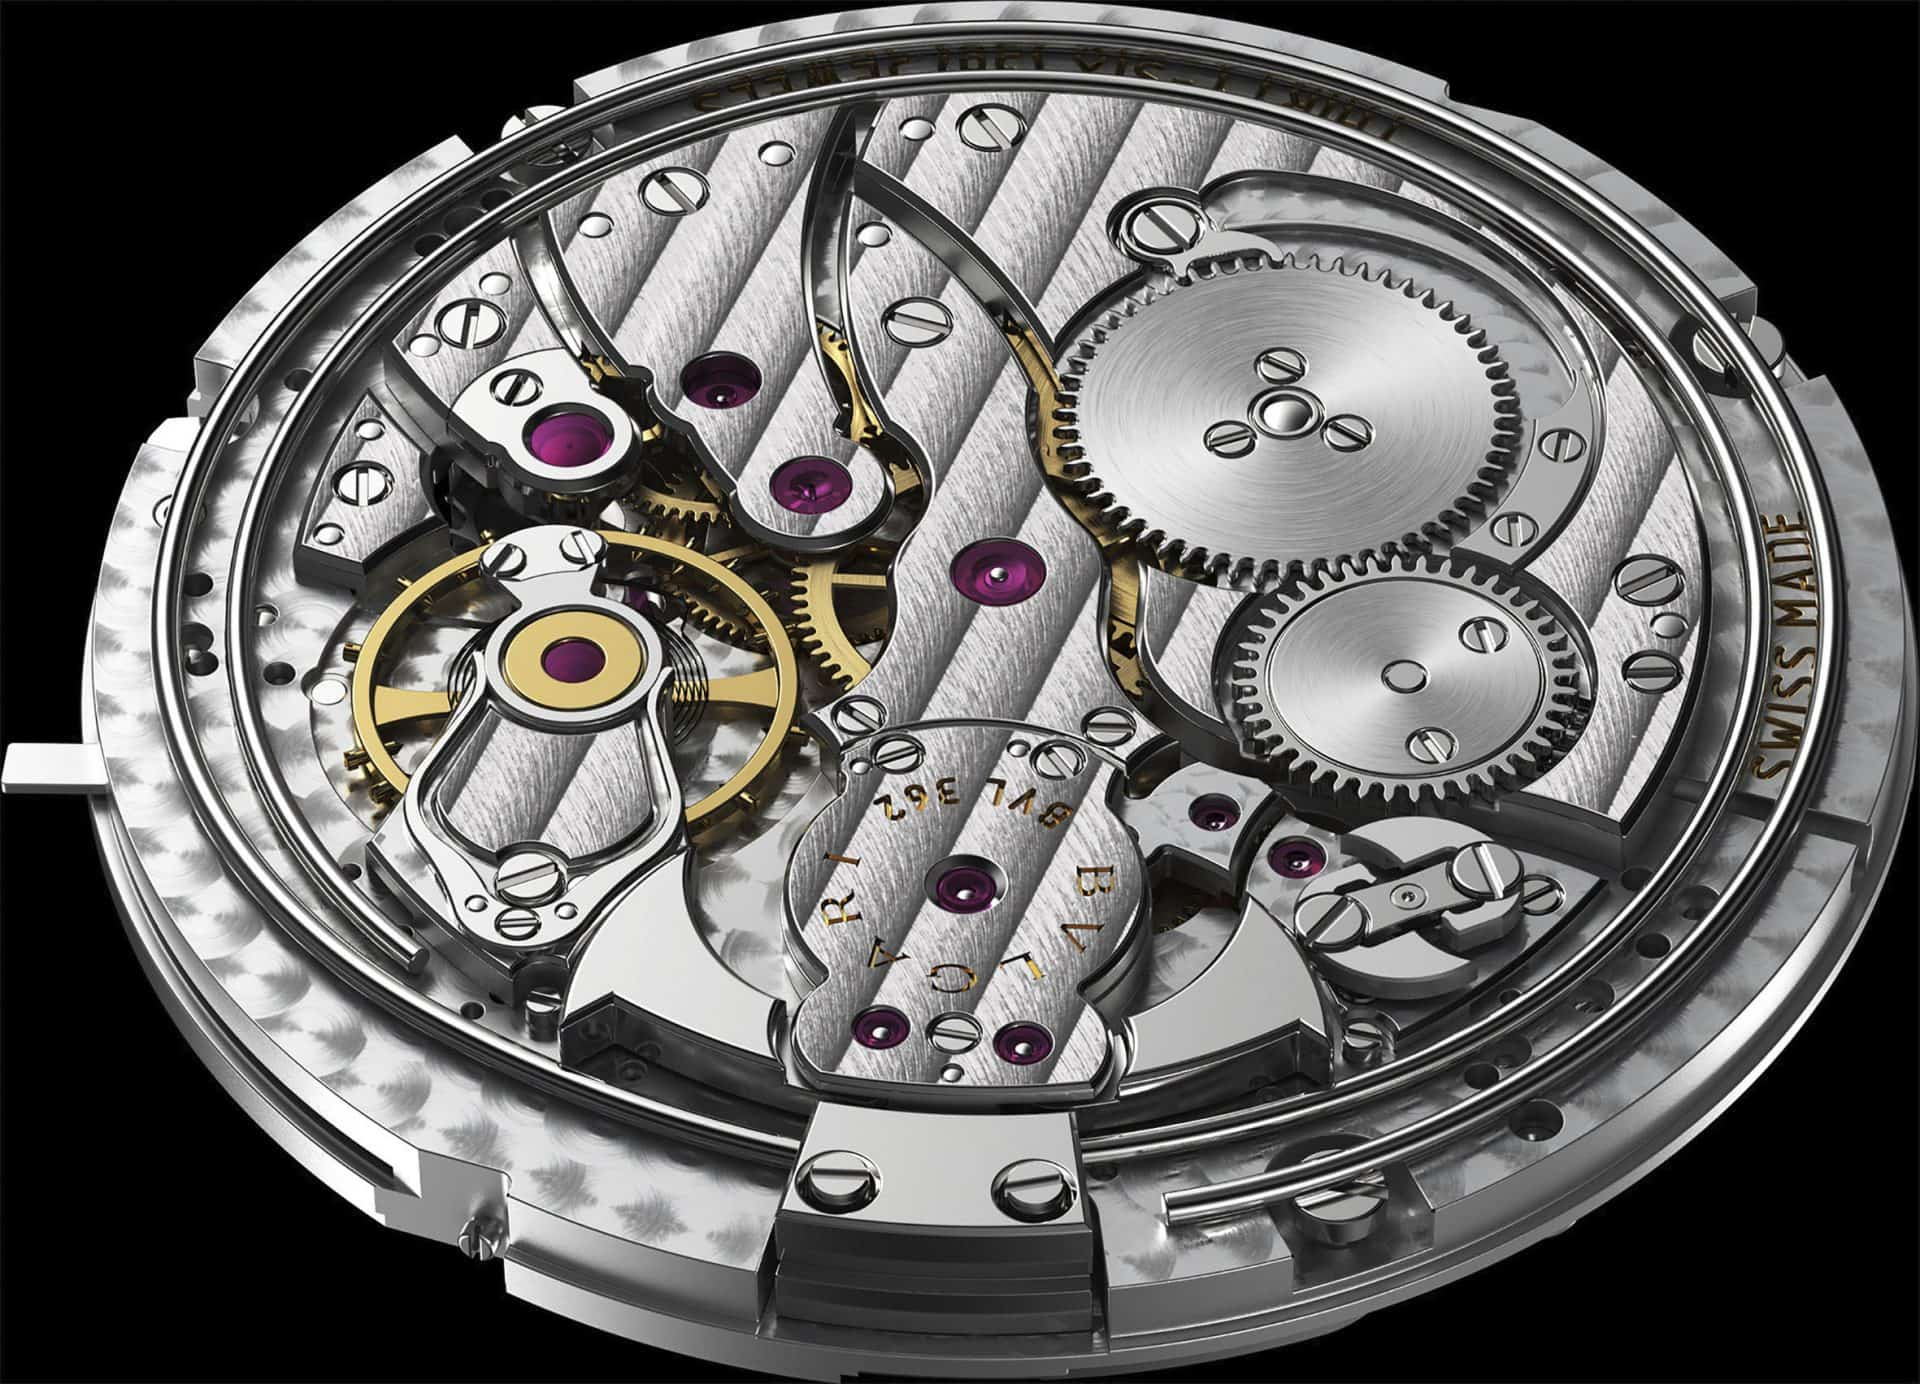 Das superflache Bulgari Octo Finissimo Repetition Minutes Kaliber 362